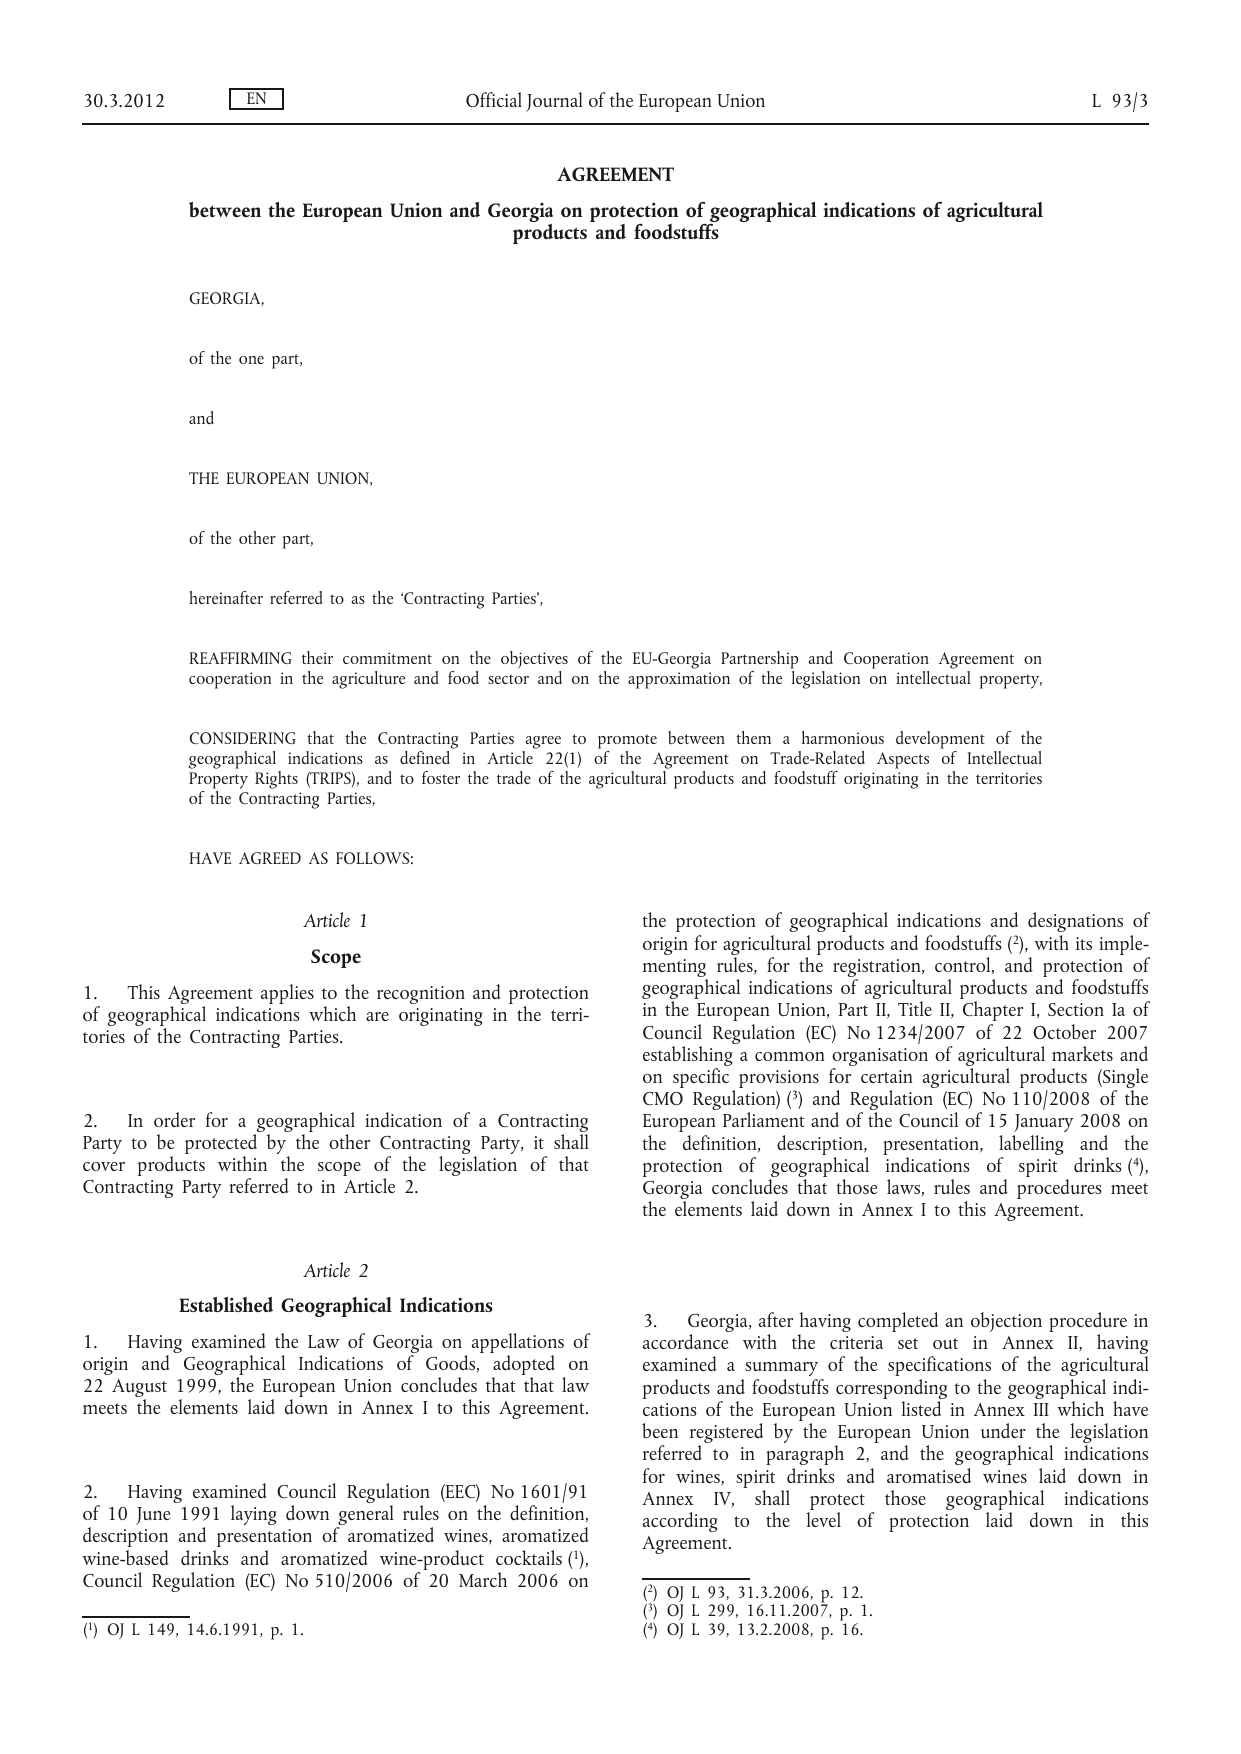 Agreement Between The European Union And Georgia On Protection